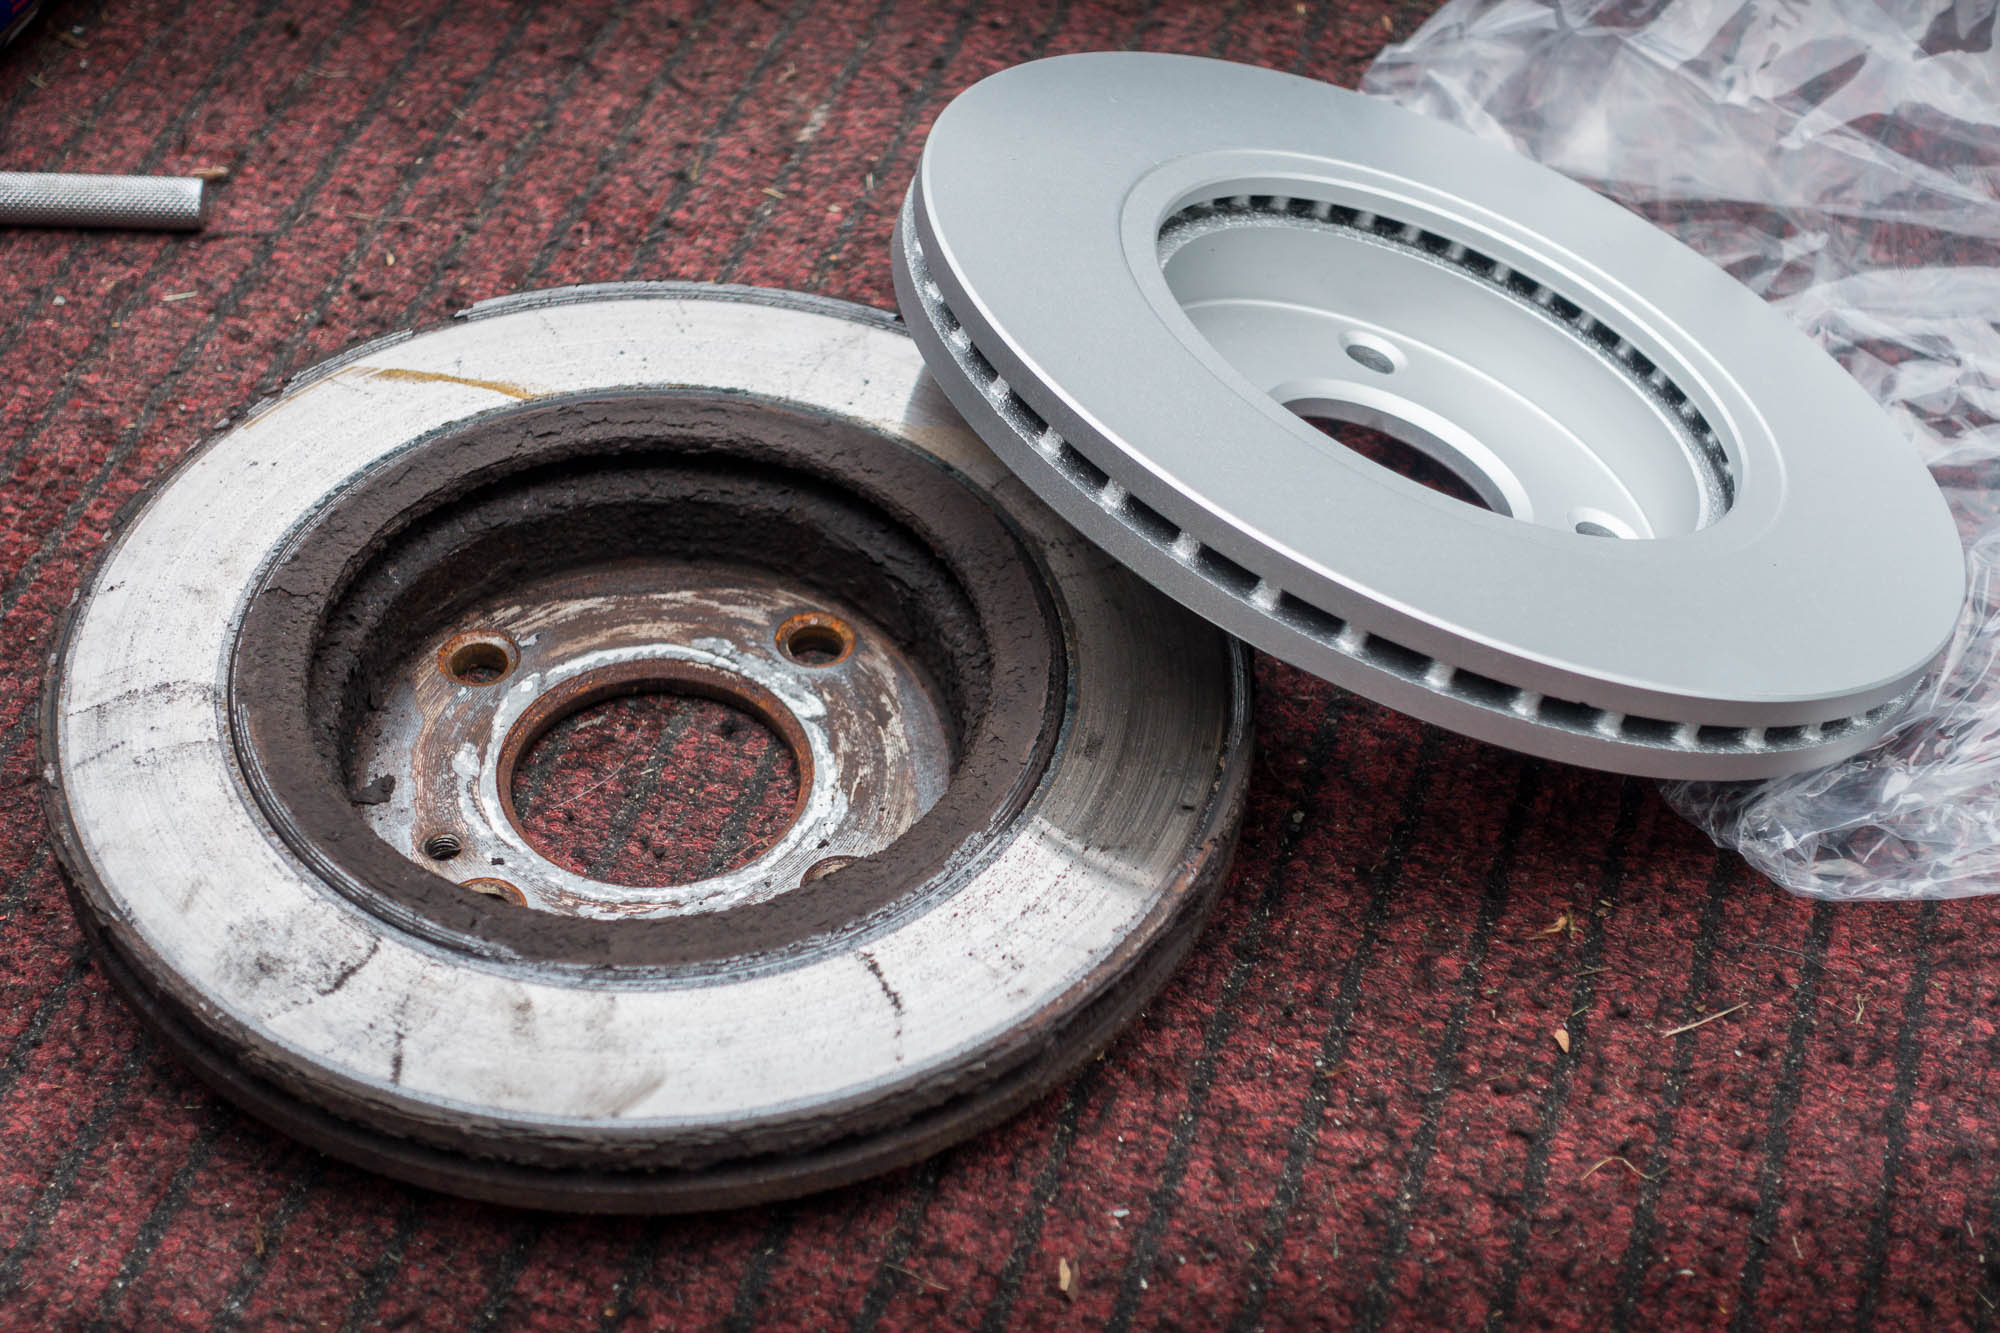 Textar Brake Pads And Discs Review - Premium Quality at a